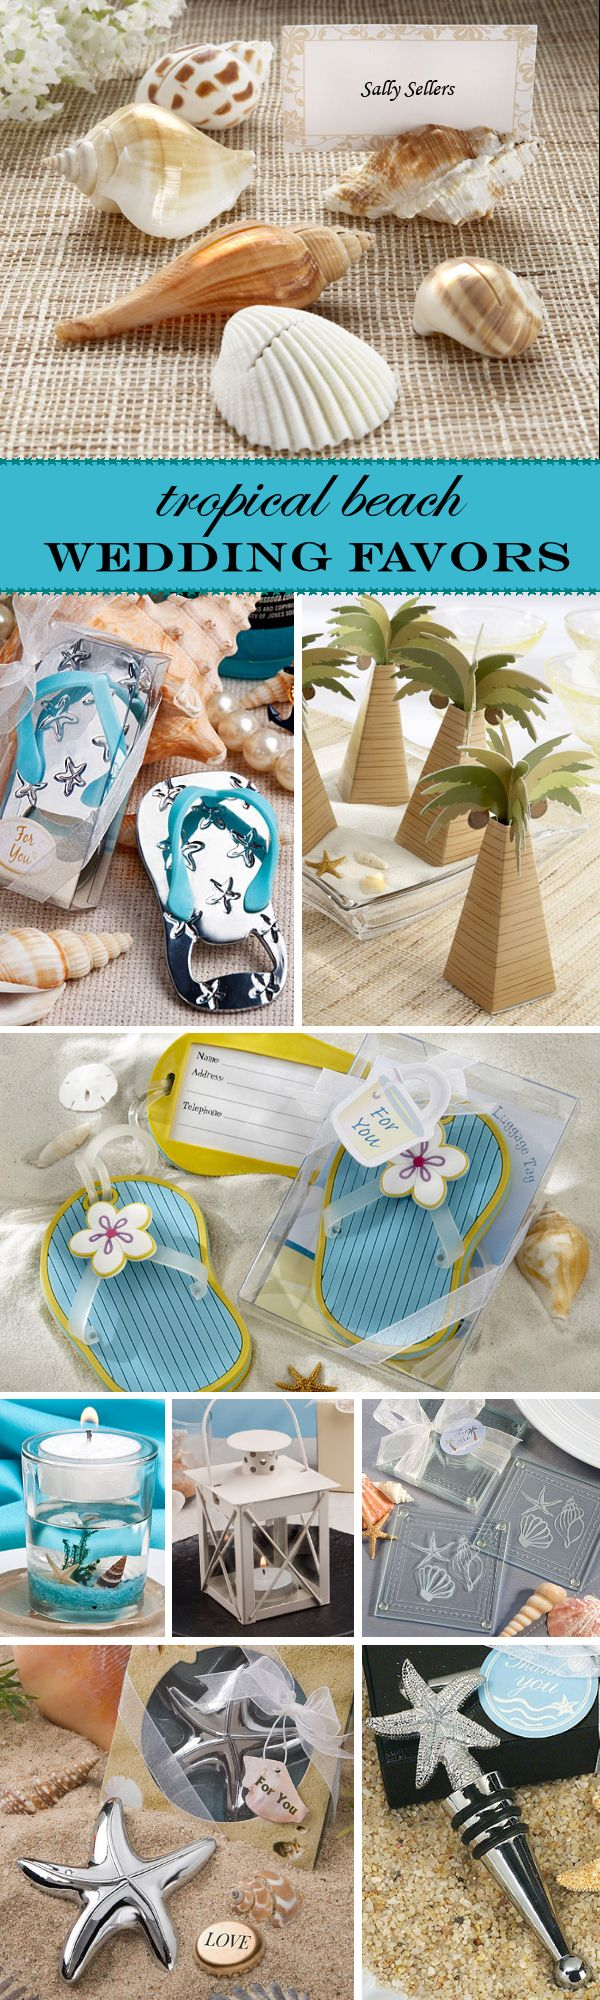 f5d0e74beddda2 Amazing Tropical   Beach Themed Wedding Favor Ideas - love the flip flop  luggage tags!